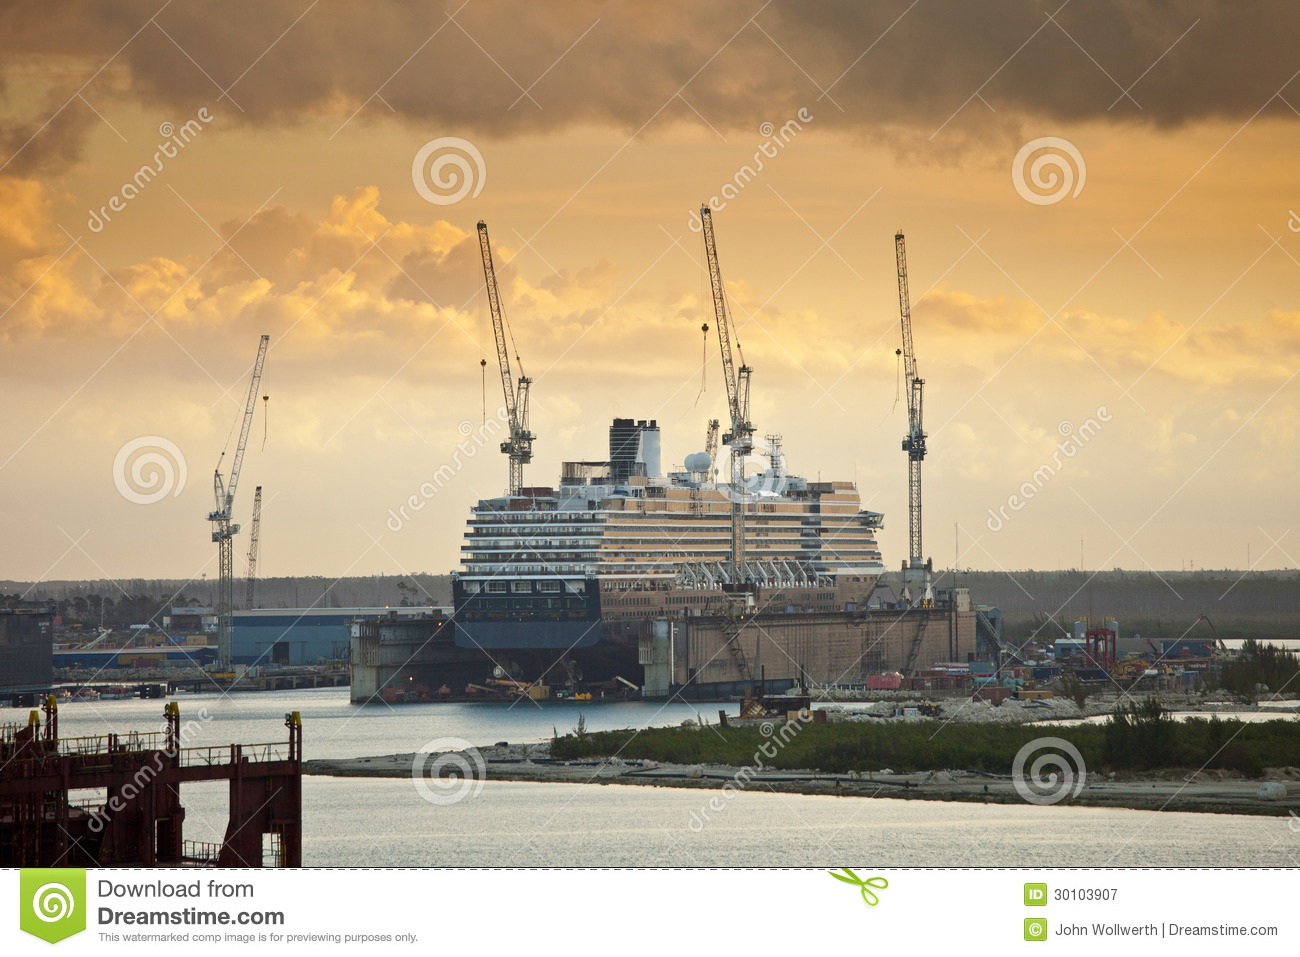 Ship being repaired in dry dock royalty free stock photography image